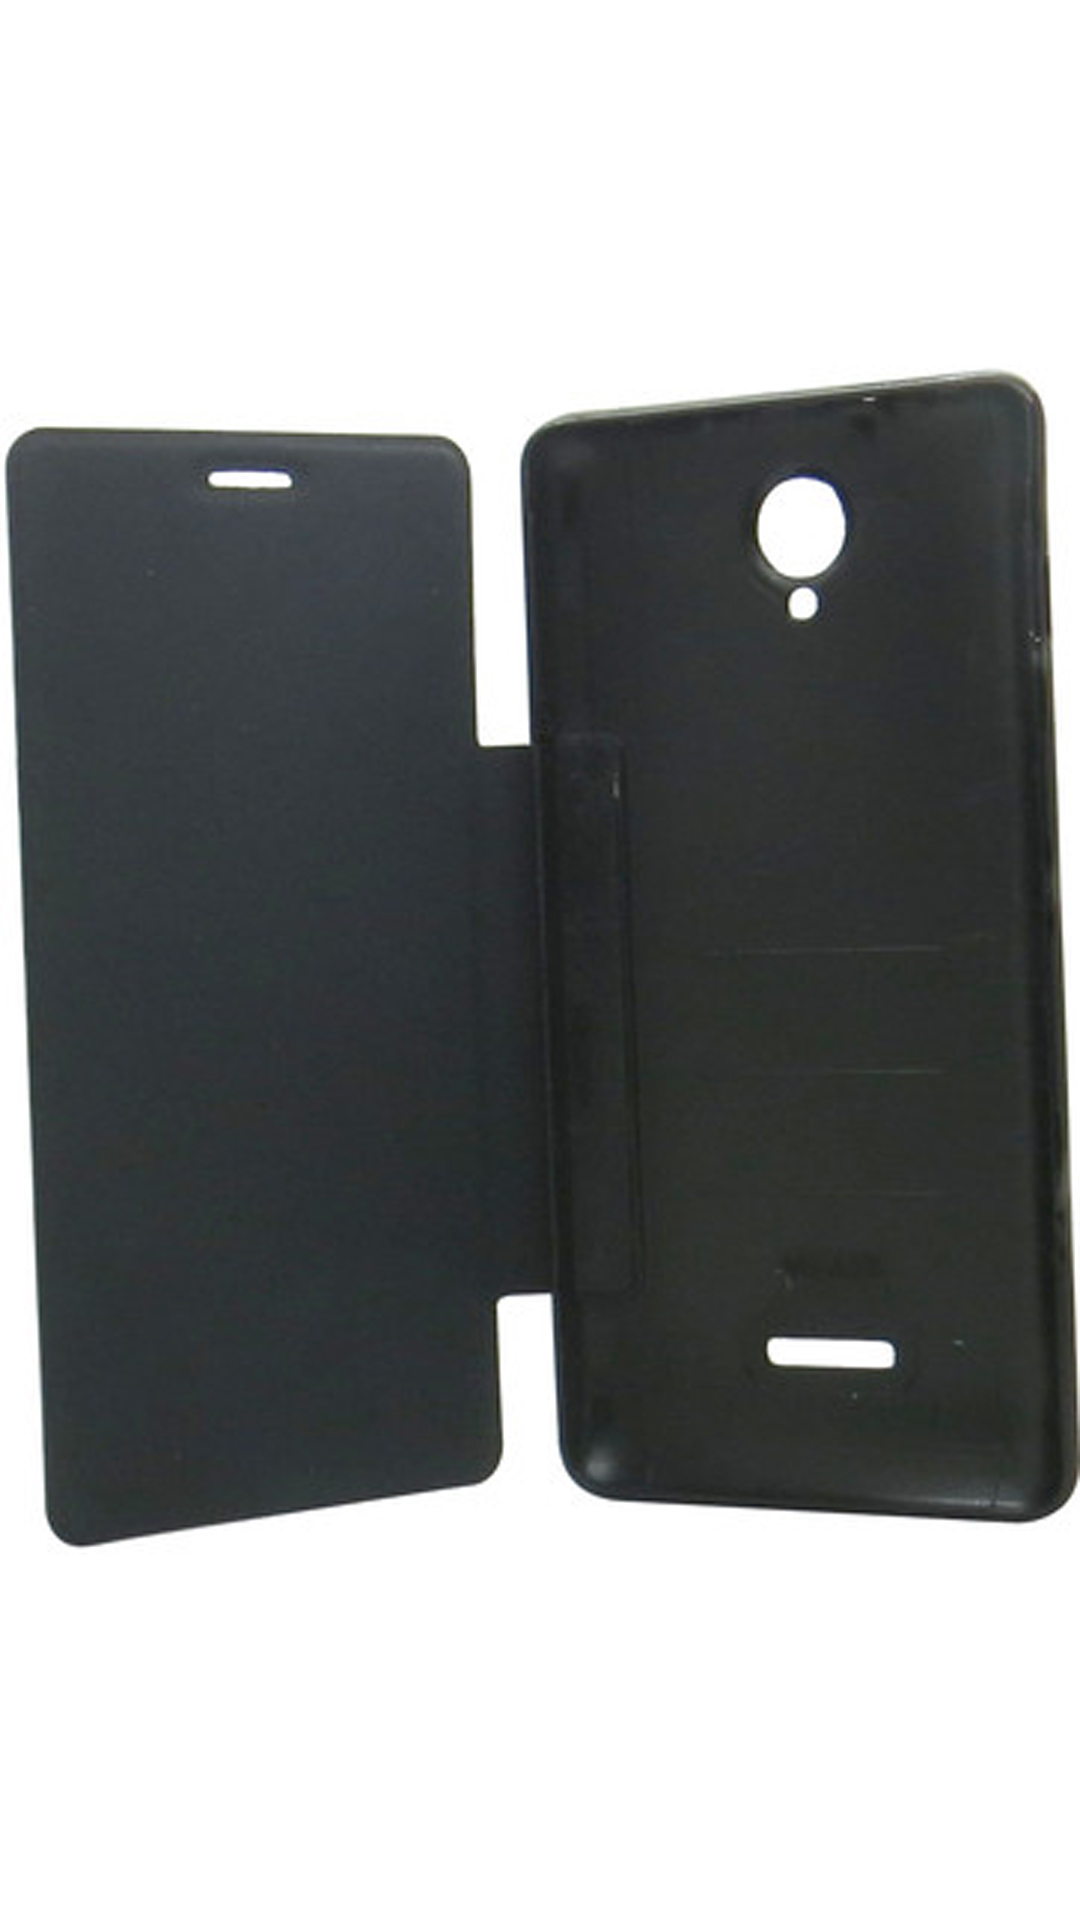 ClickAway Flip Cover For For Micromax Canvas Fun A76  Black  available at Paytm for Rs.197